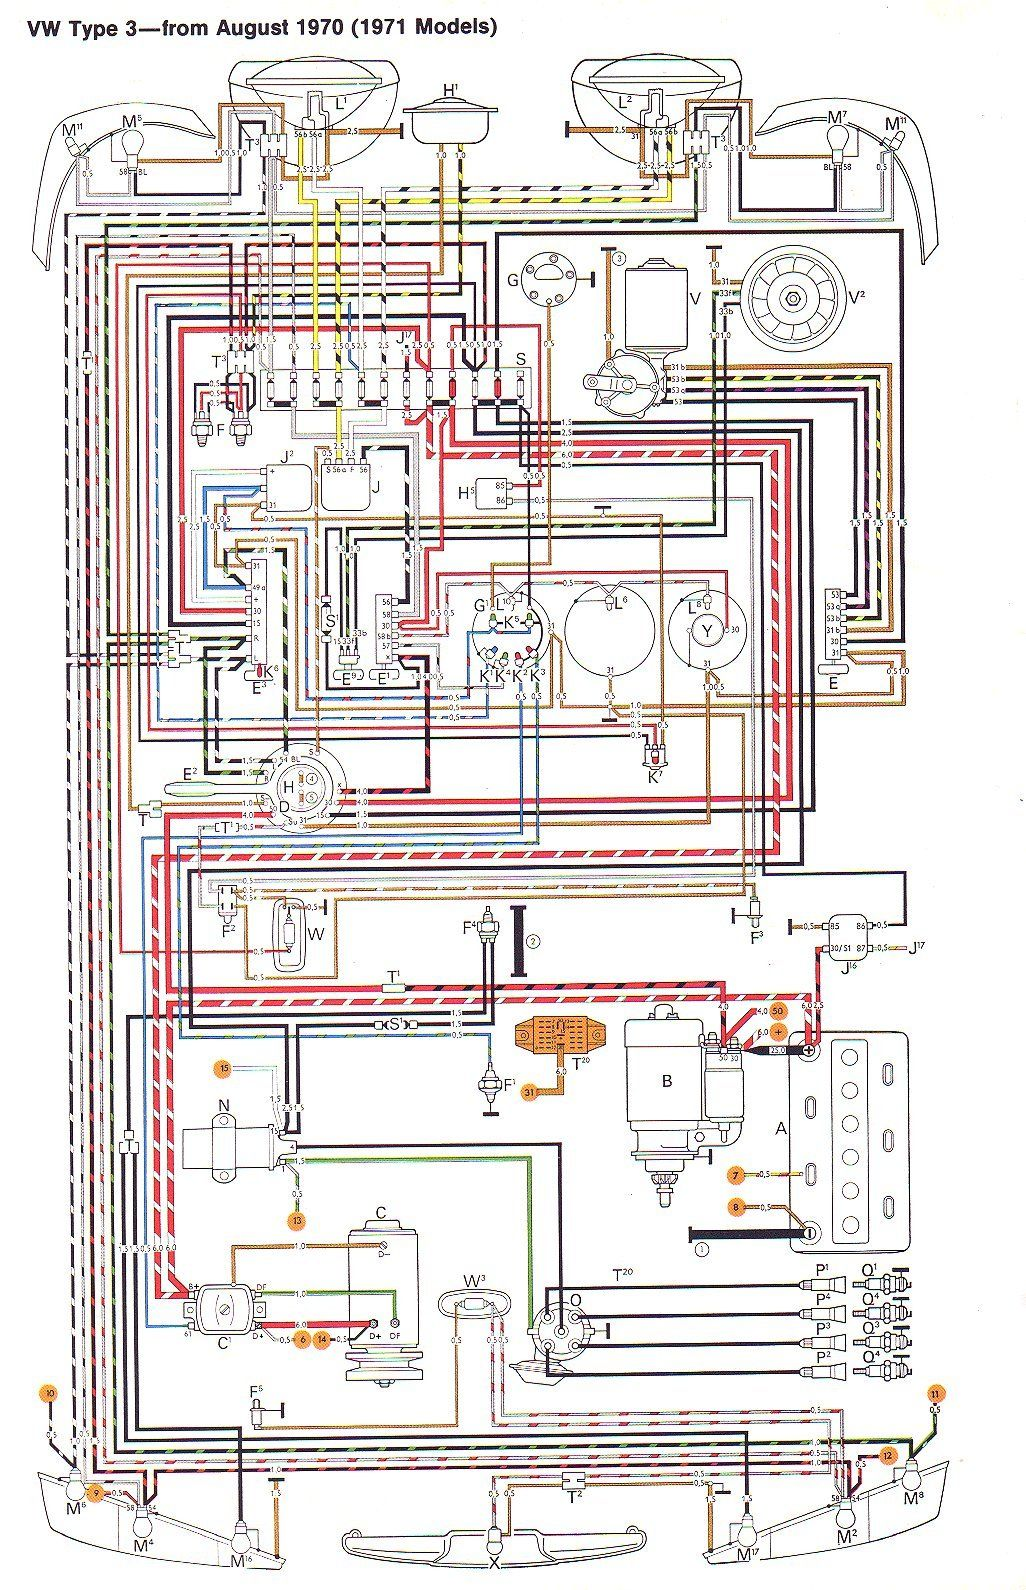 71 Beetle Engine Wiring Diagram Free For You Bug Altinator With Vw T3 Ruthie Pinterest Beetles Cars And Rh Com Speedo 74